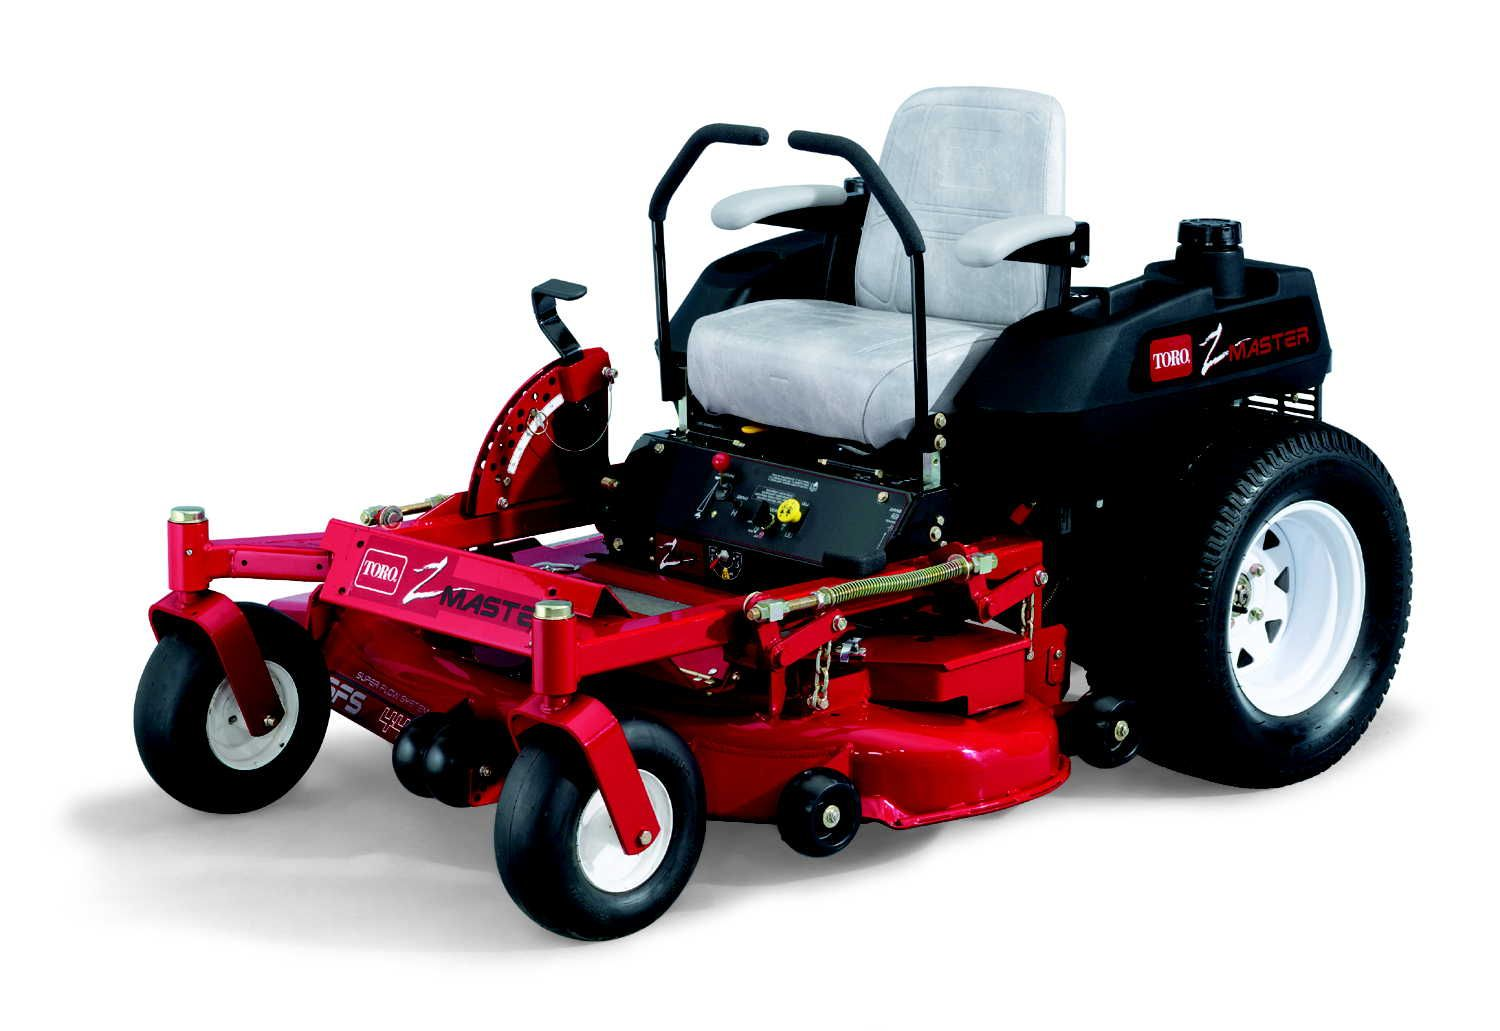 Recall Image The Toro Company Recalls Riding Mowers Toro Lawn Mower Lawn Mower Riding Mowers